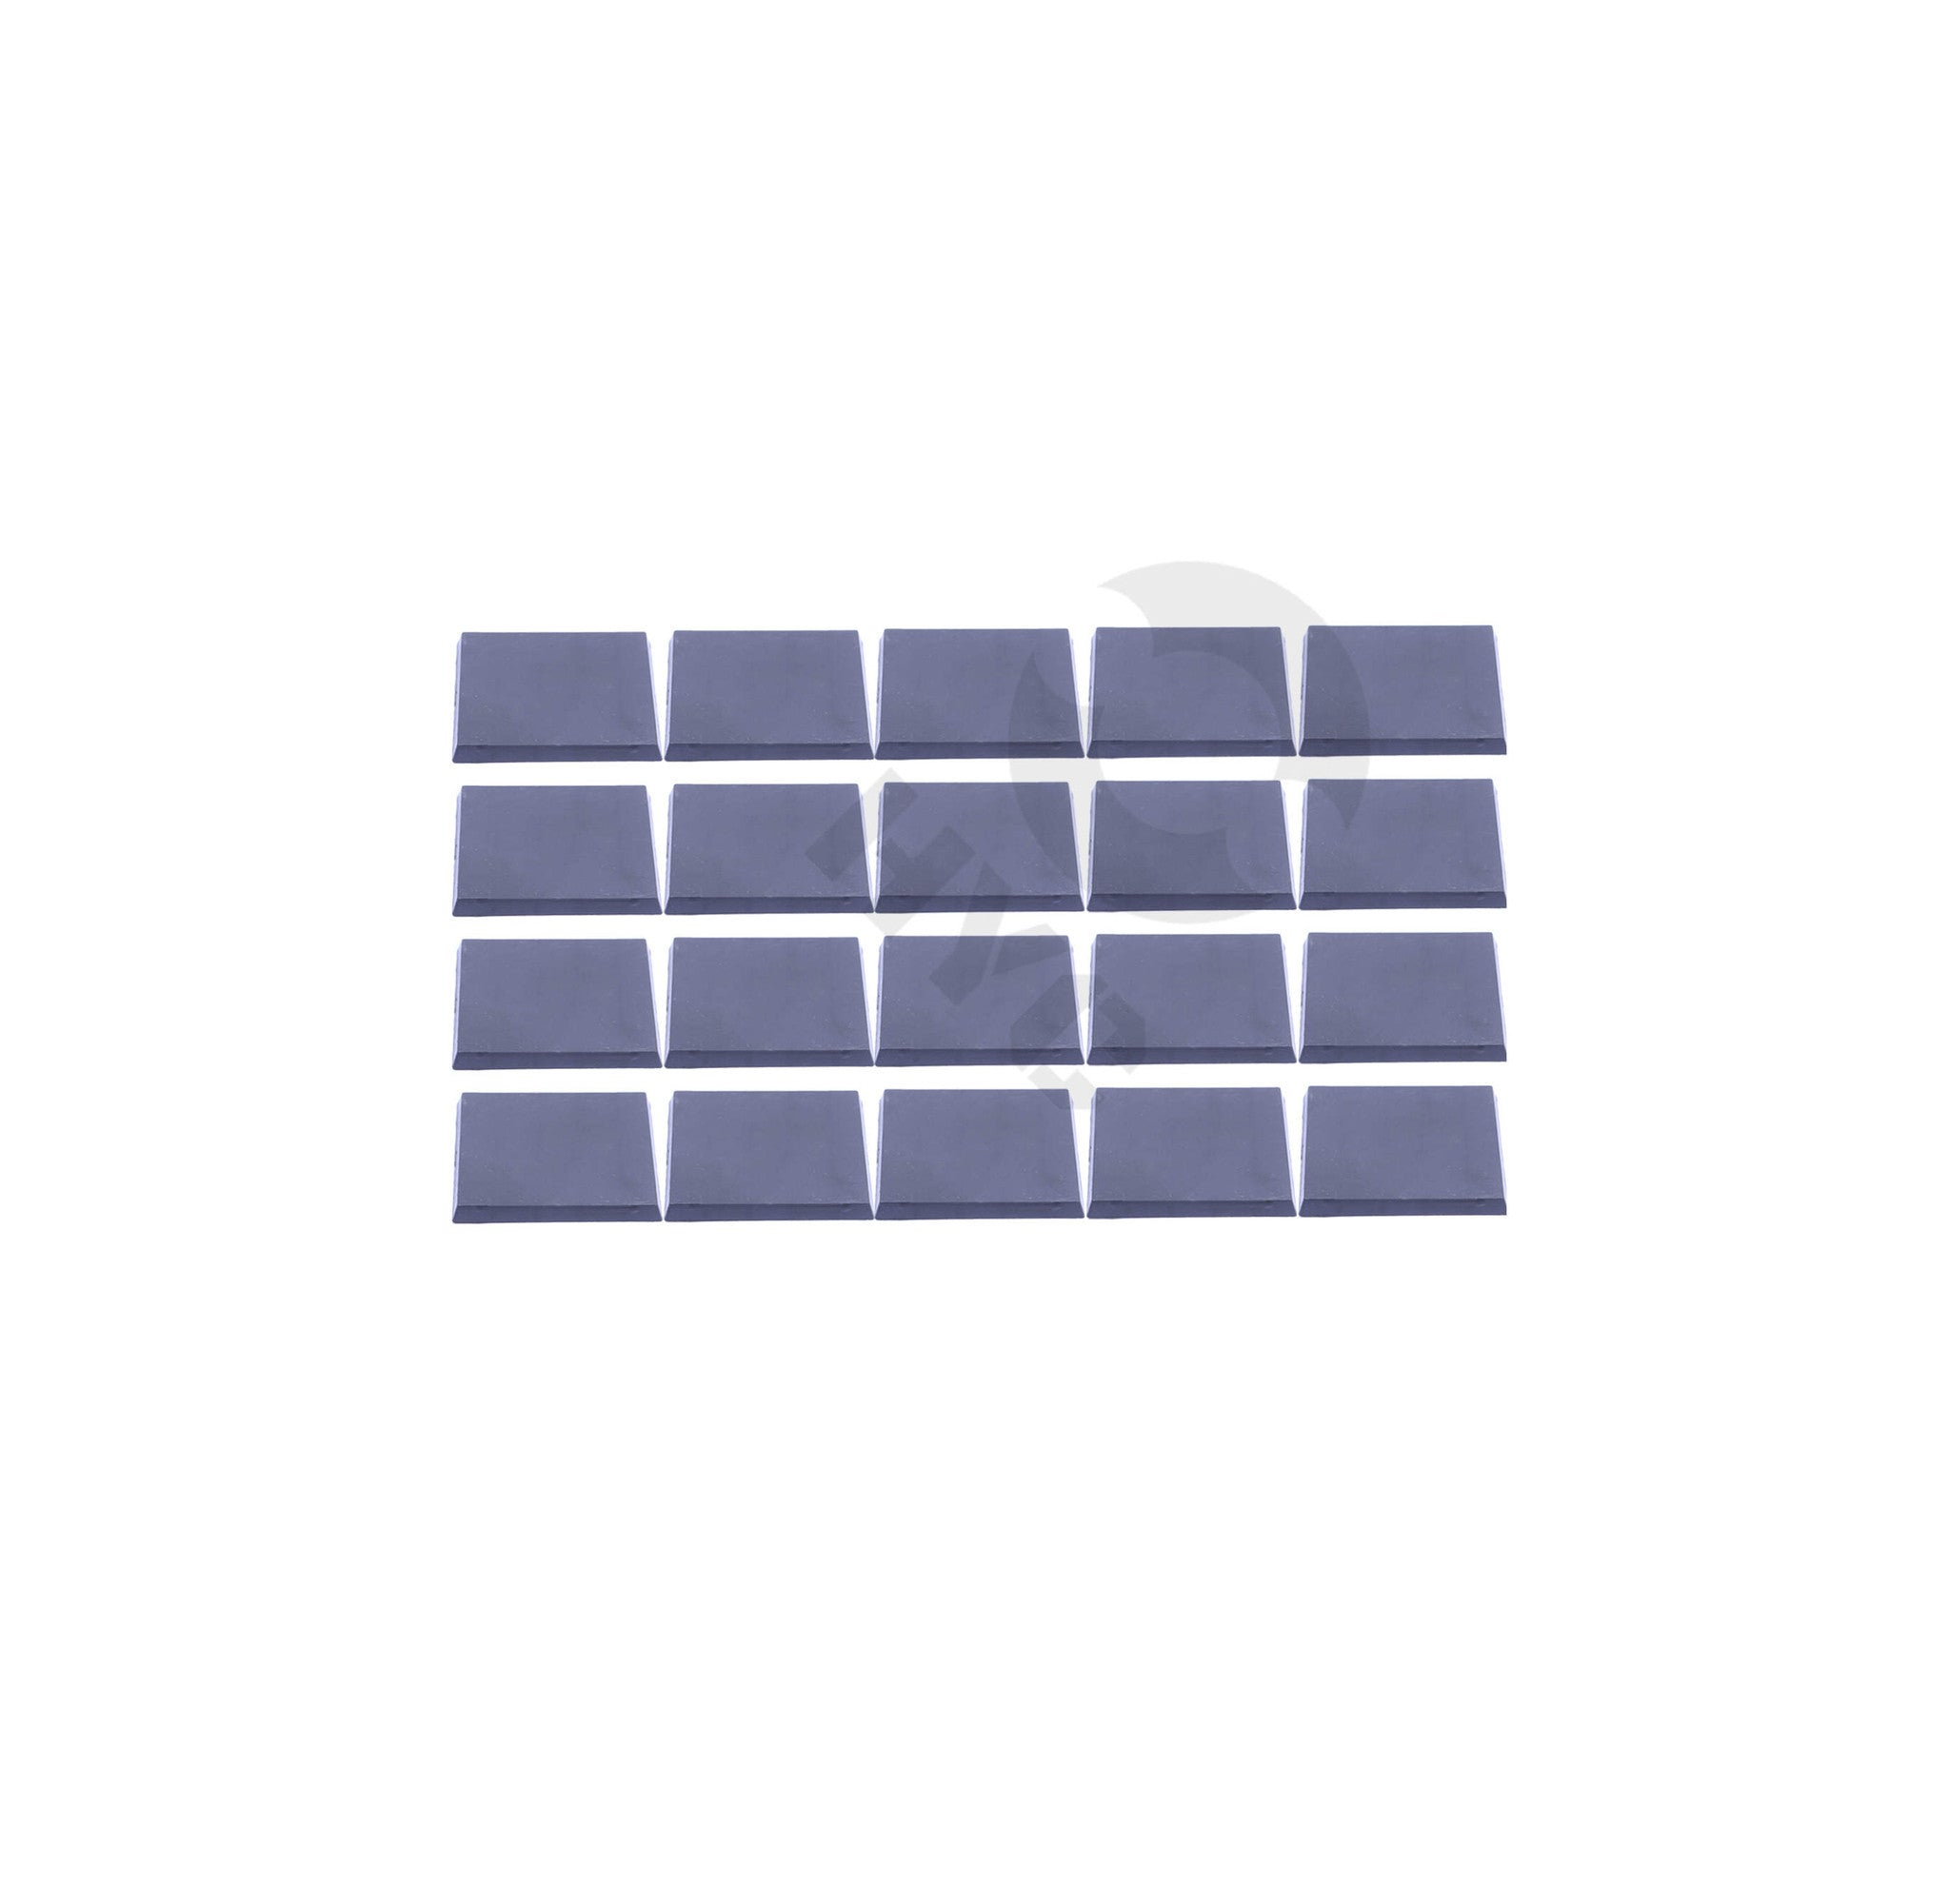 Lot of 20 50mm square miniatures bases - WargameBase Store